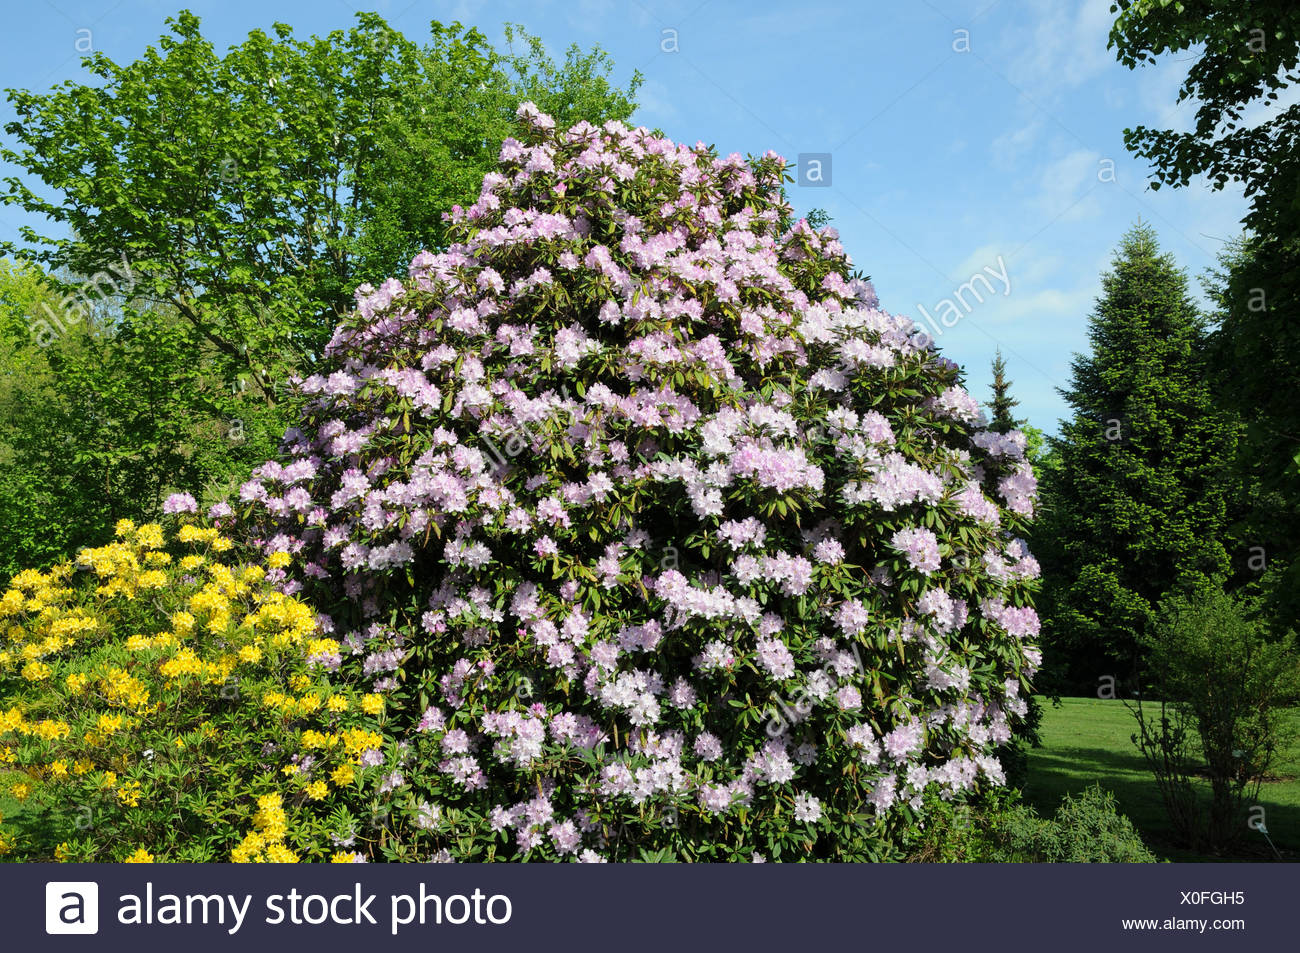 Rhododendron ponticum, Rhododendron luteum - Stock Image